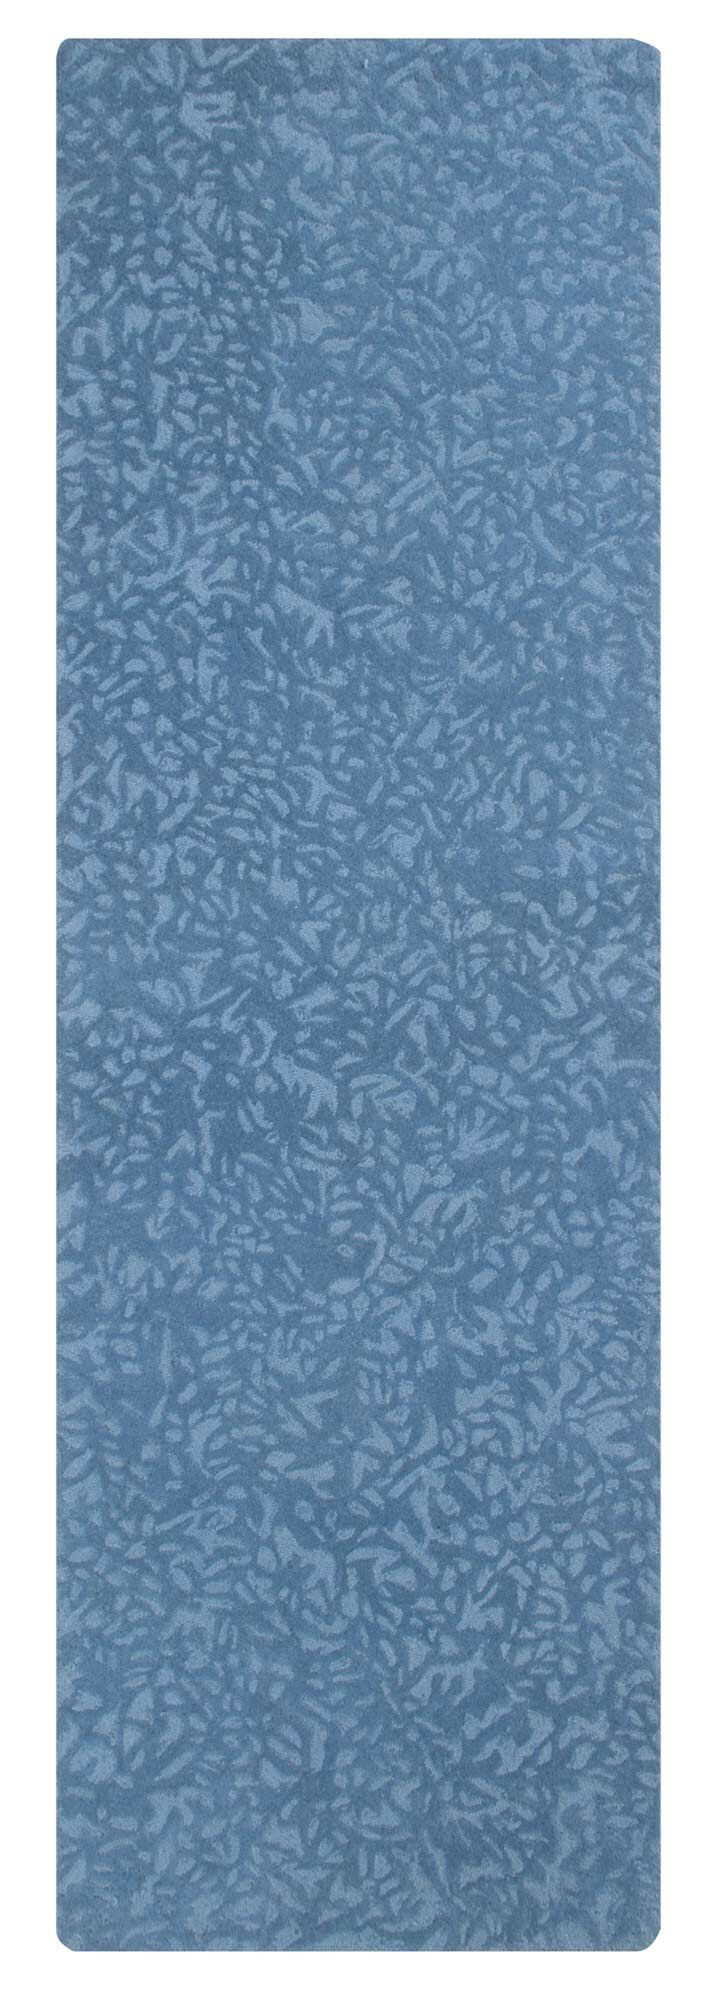 Crackle Hand-Tufted Blue Iris Area Rug Rug Size: Runner 2'6